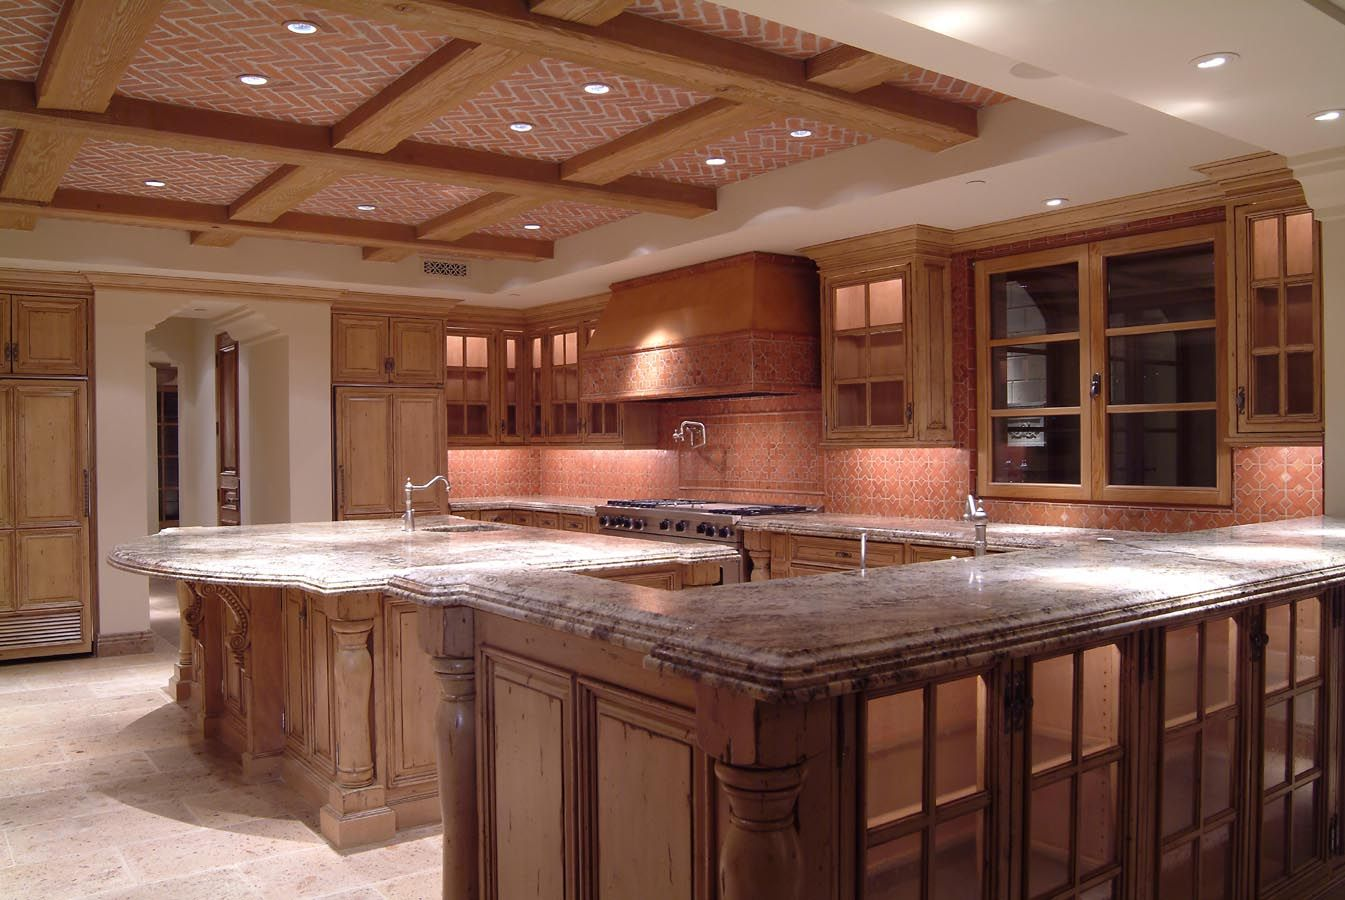 Kitchen Cabinets High End Ultra Highend Custom Kitchen Cabinetry  High End Cabinetry.